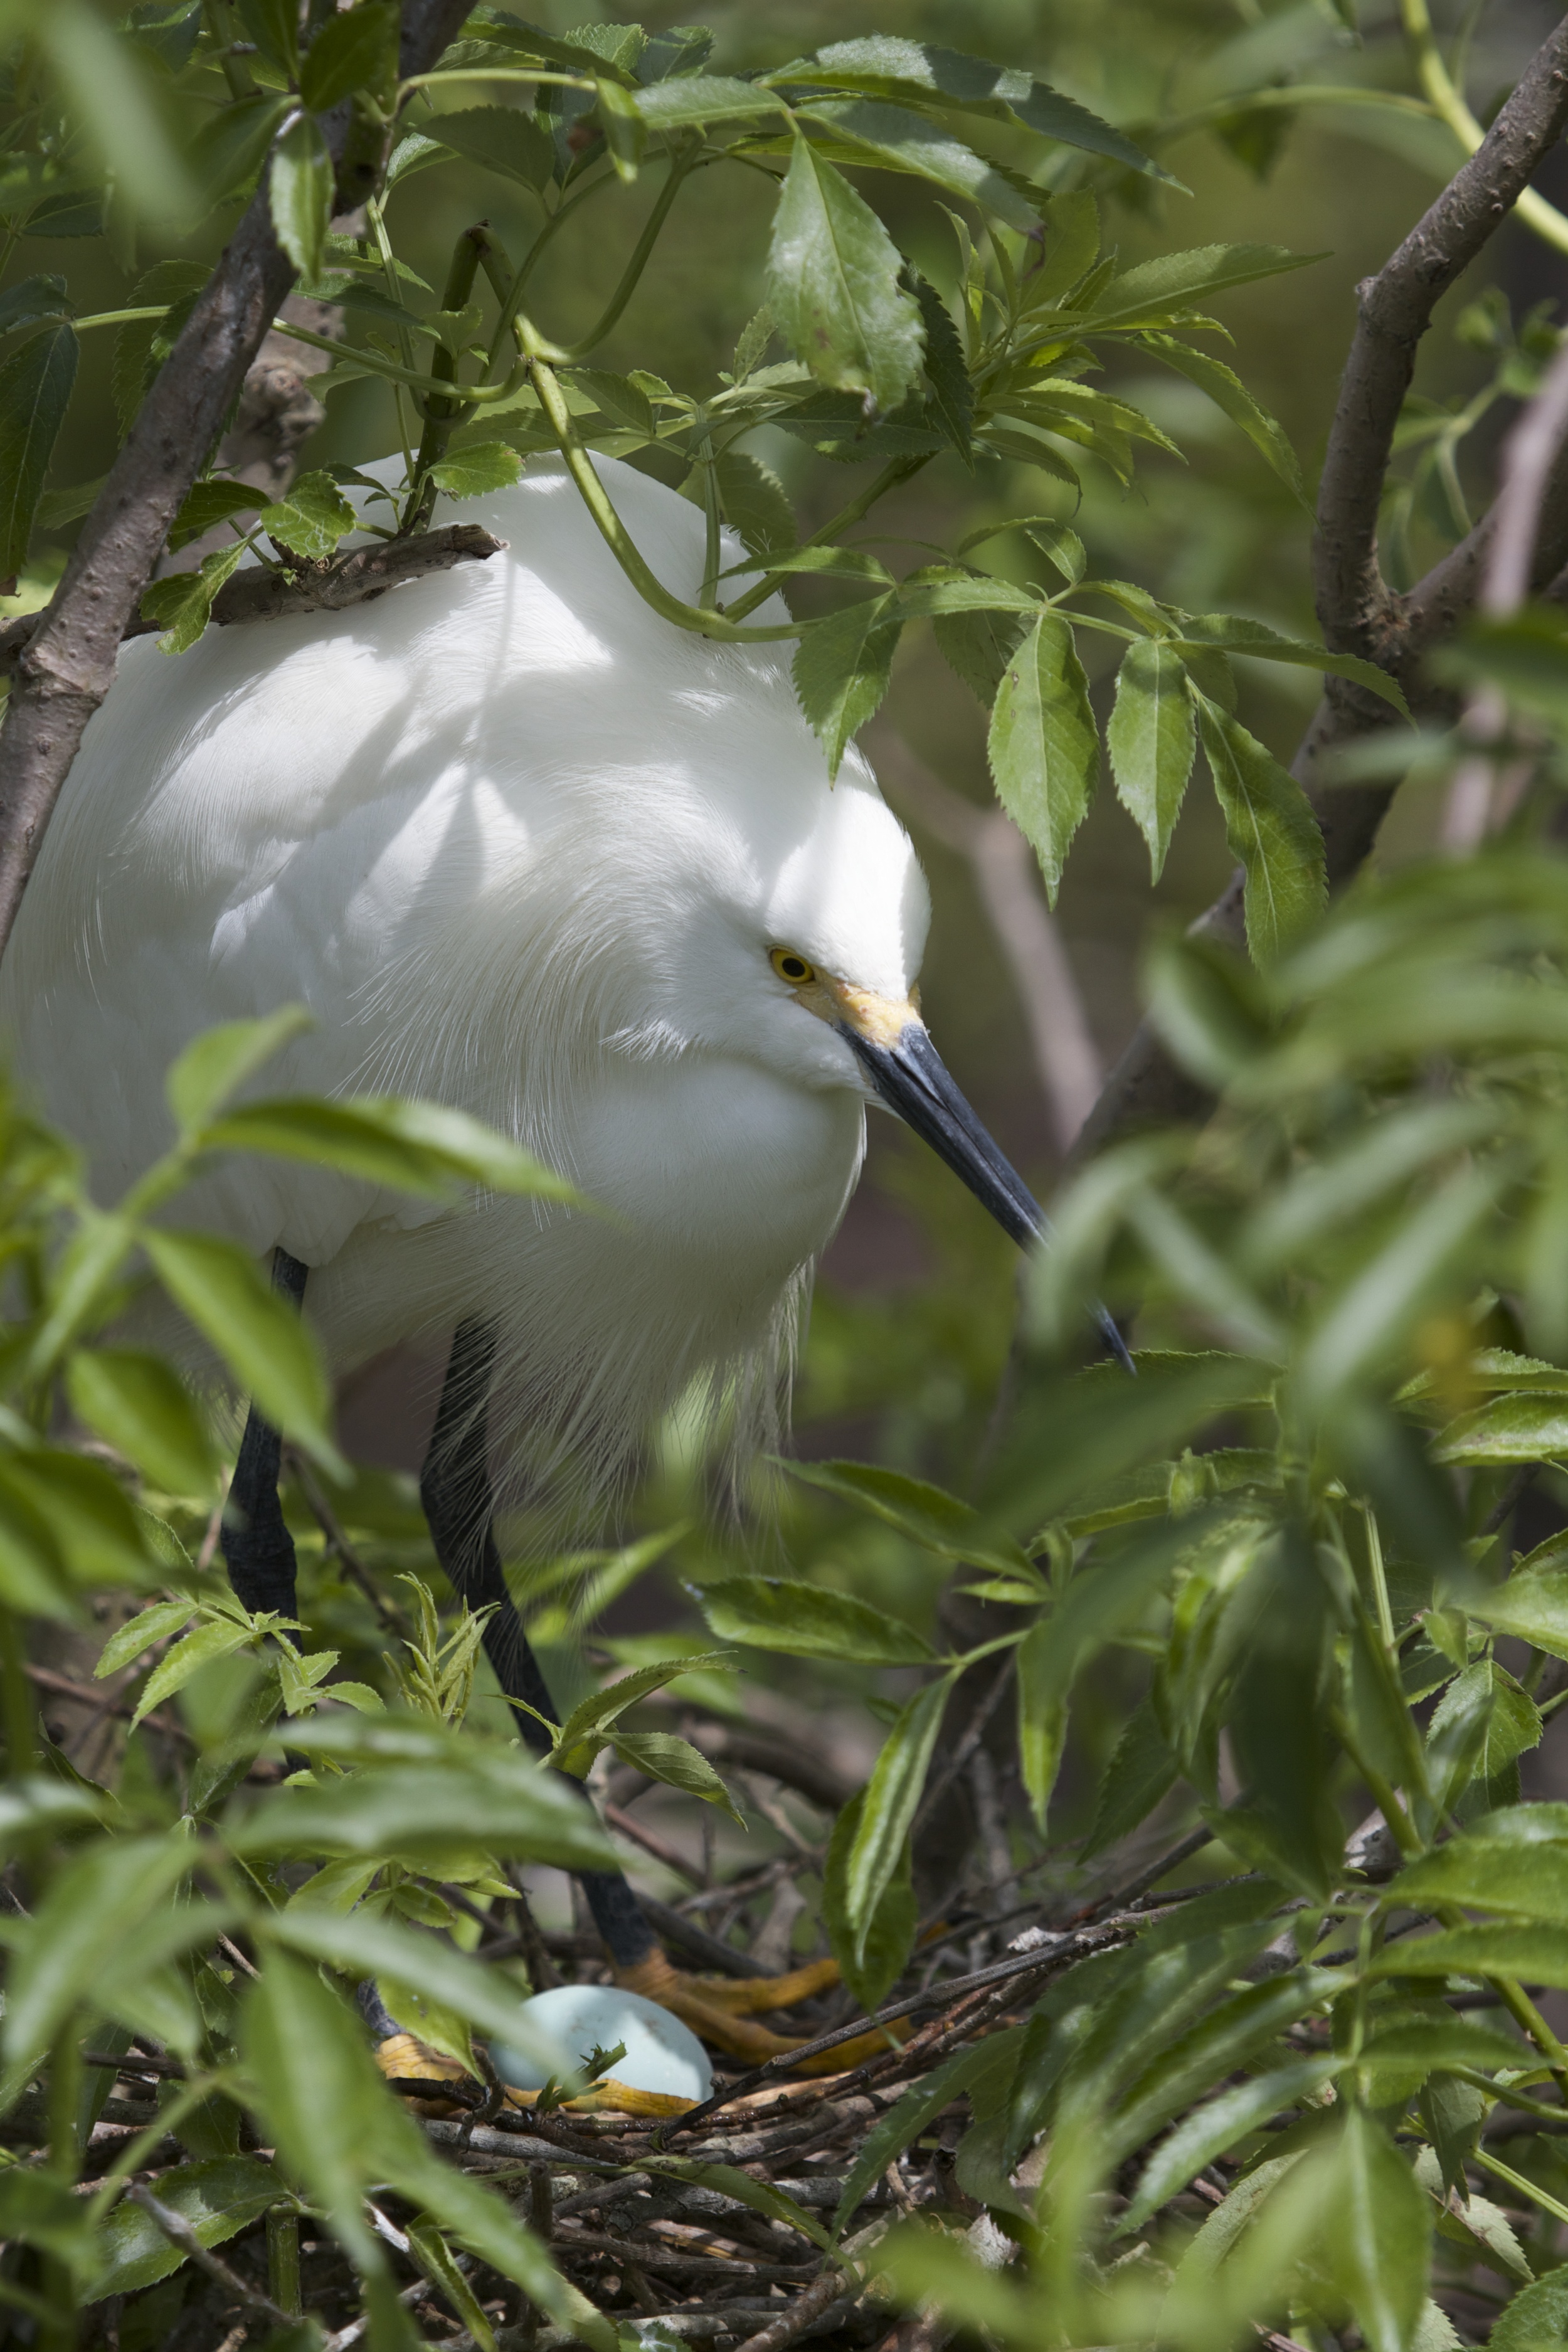 A New Generation waiting to be born! Snowy Egret on nest.